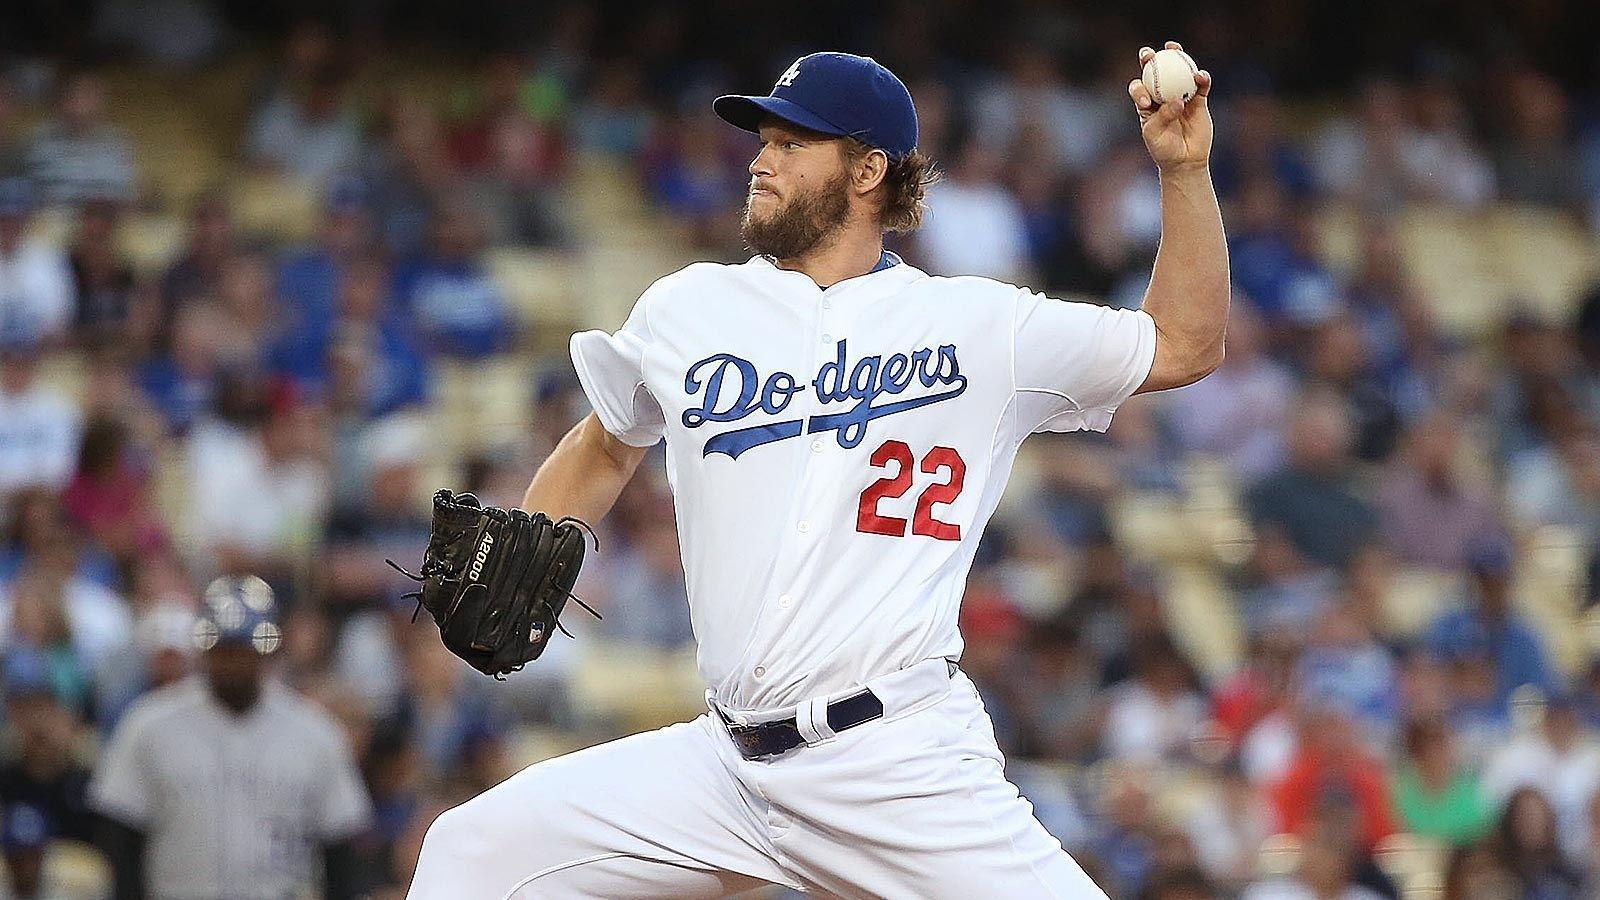 clayton kershaw wallpapers » Wallppapers Gallery